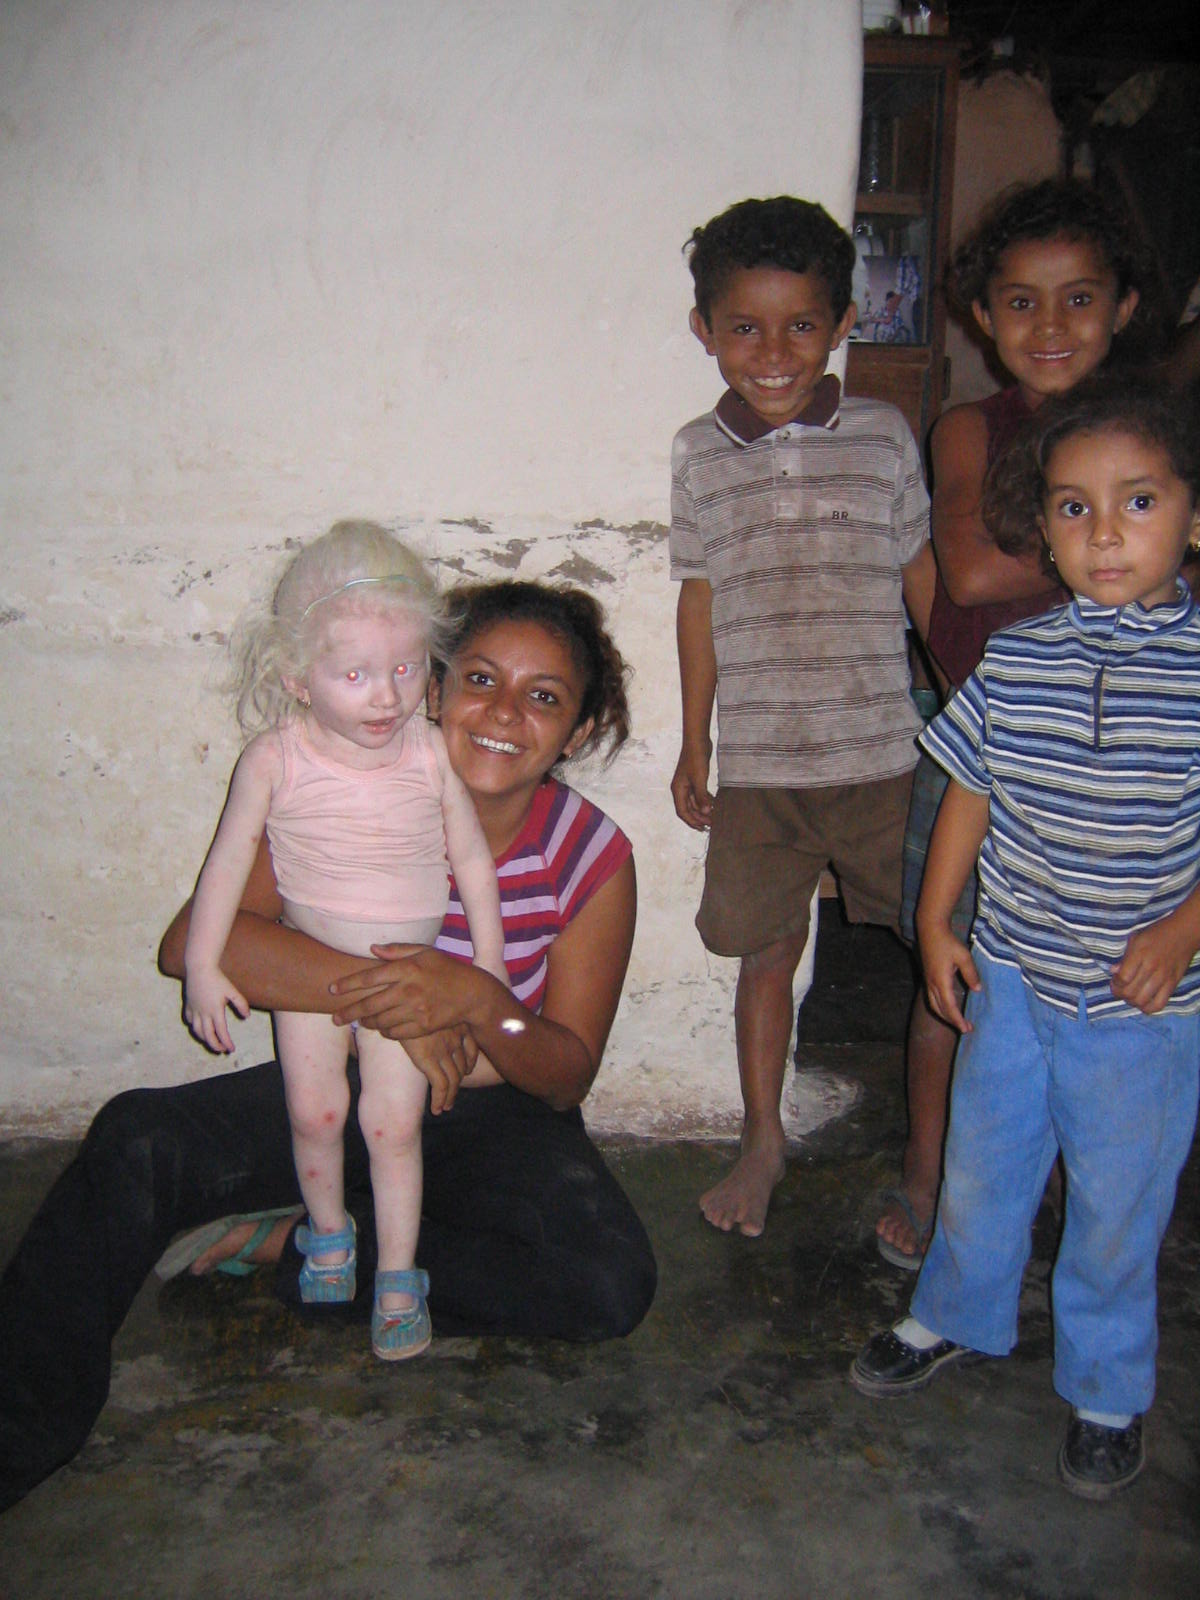 http://upload.wikimedia.org/wikipedia/commons/8/8b/Albino_girl_honduras.jpg